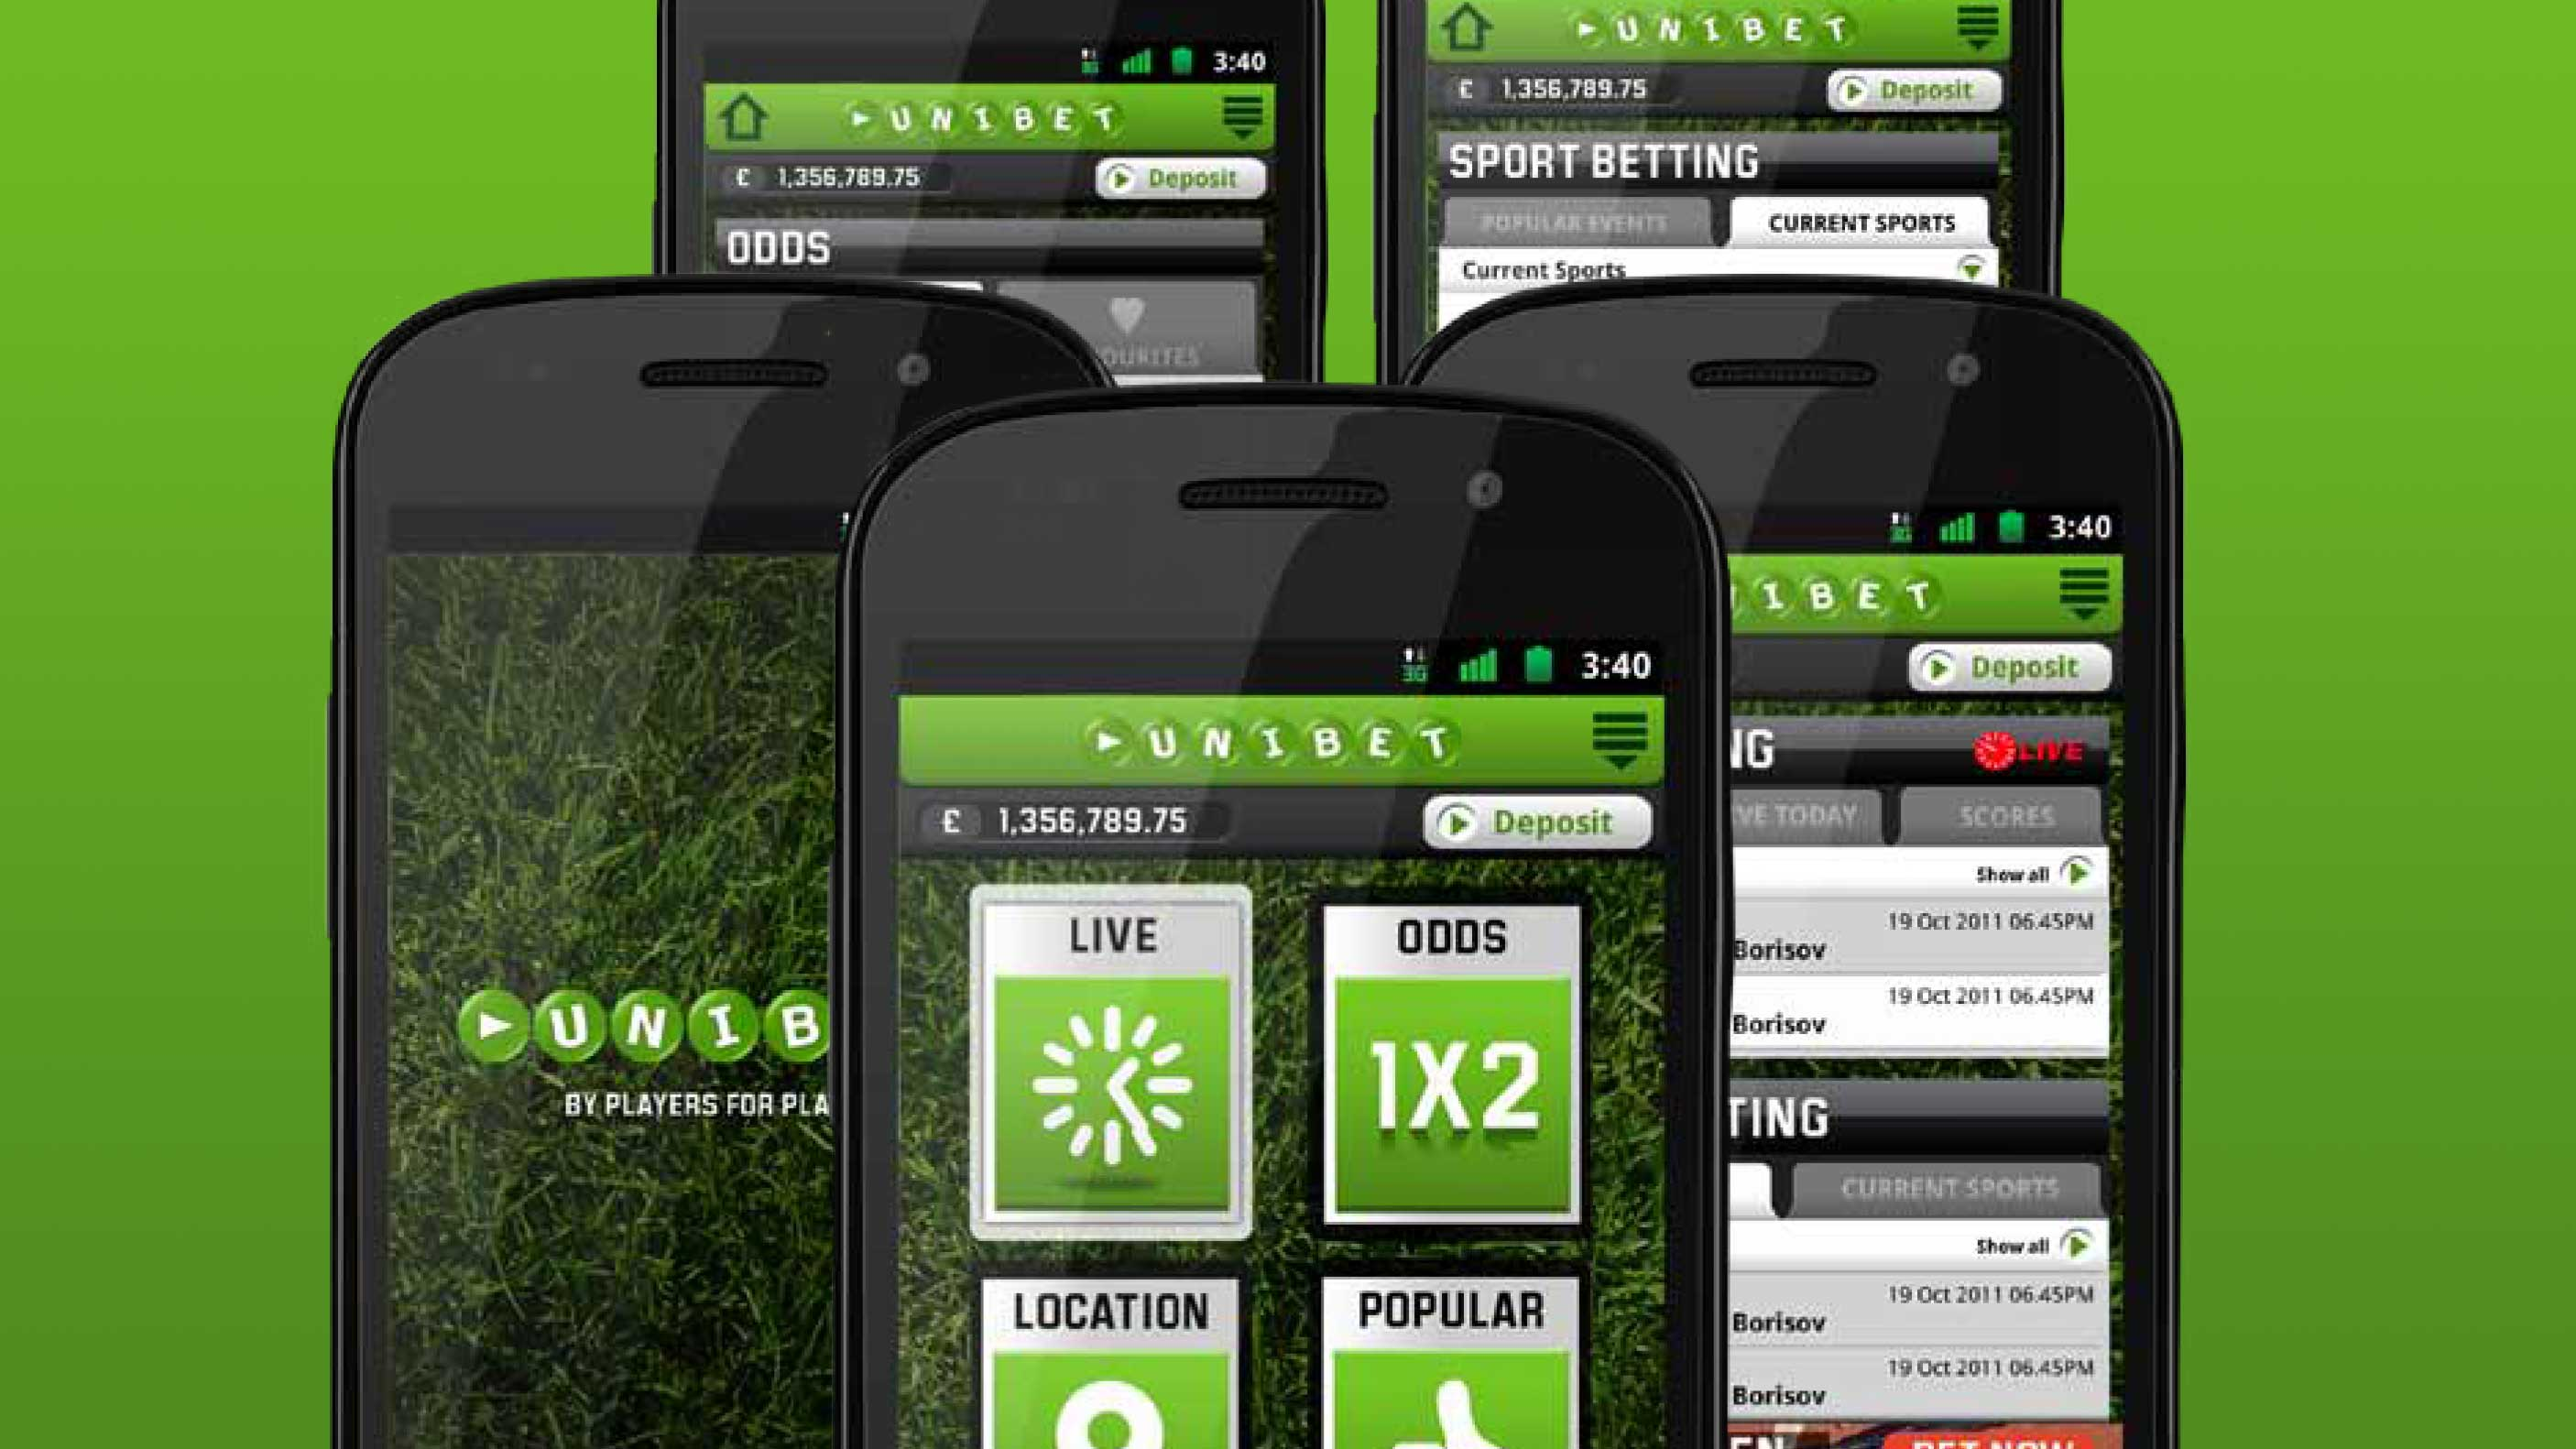 mobile-unibet-strong-h2-performance-shaken-by-currency-exchange